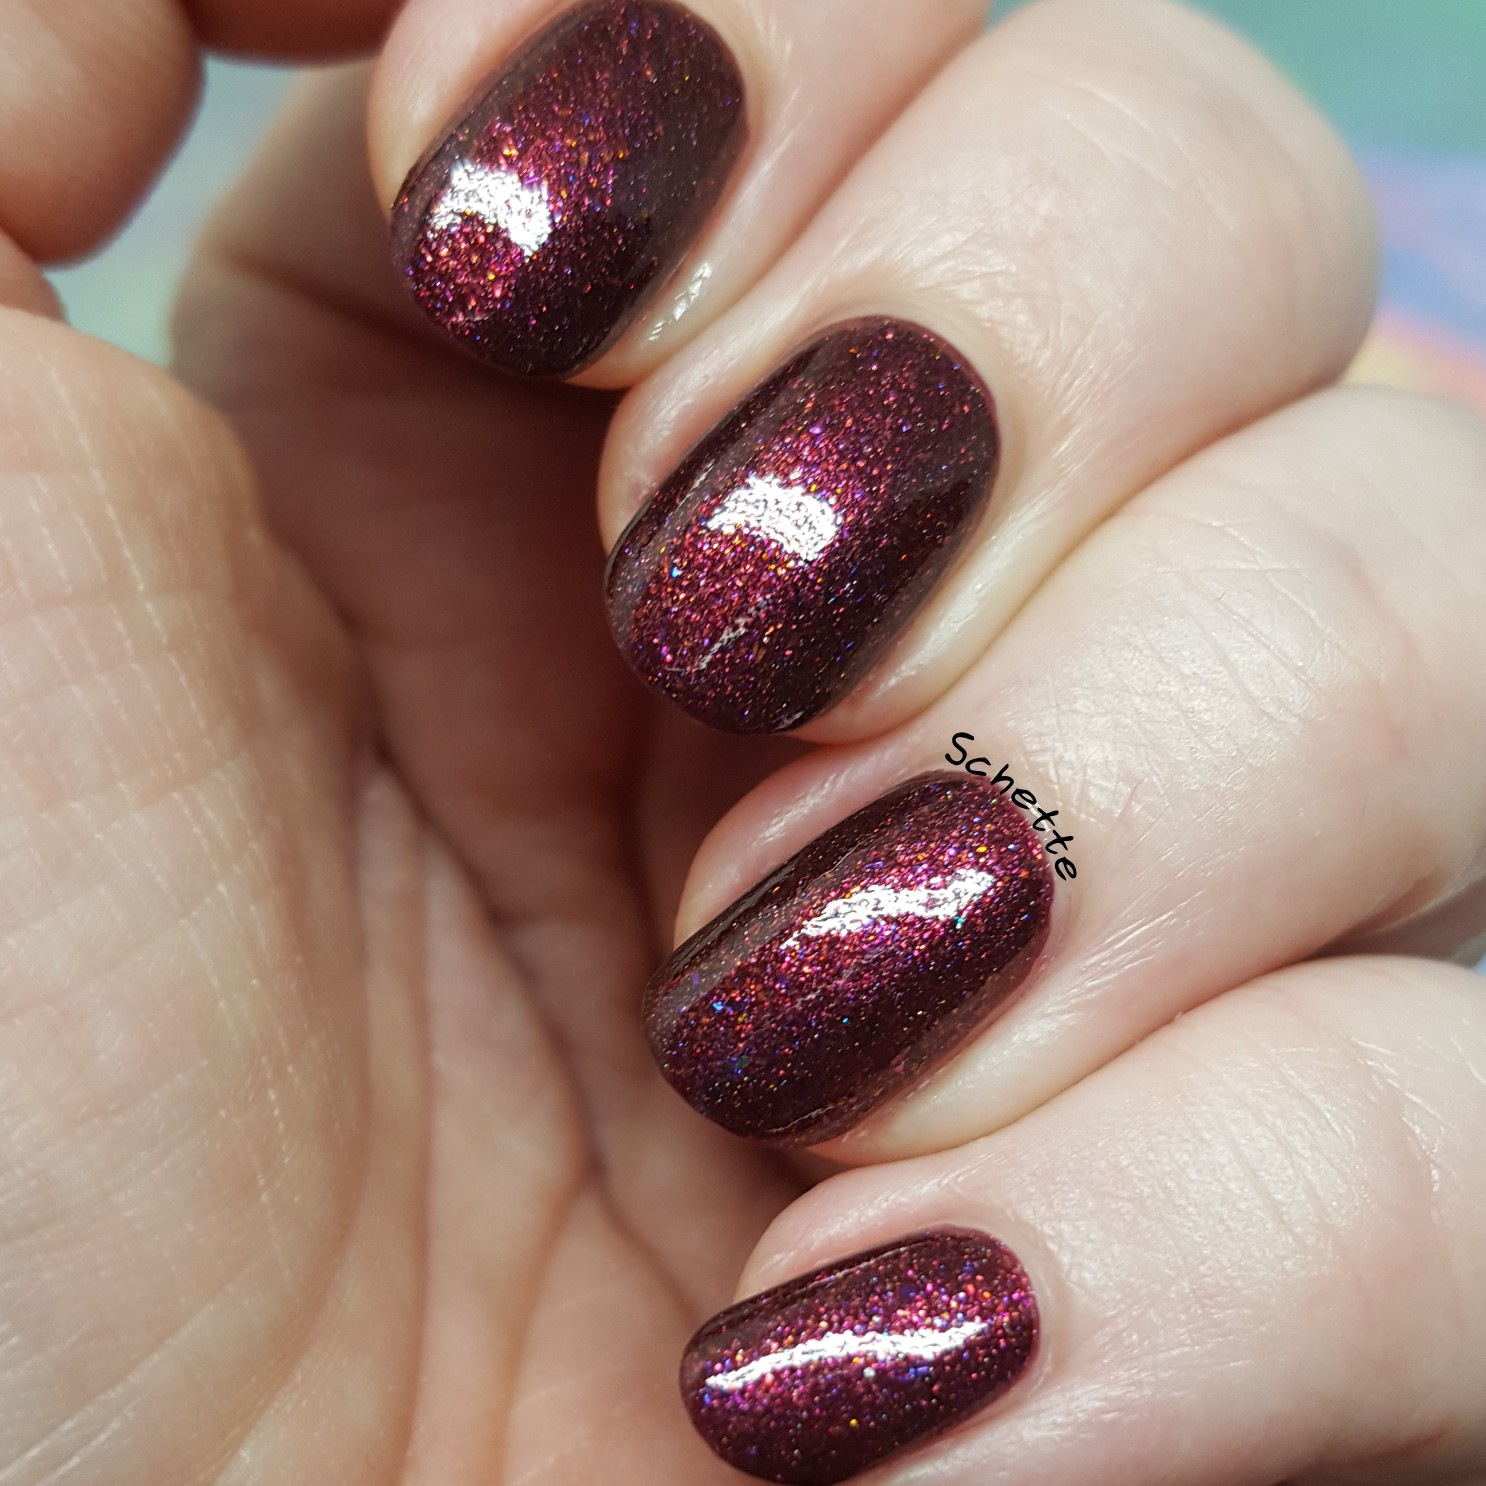 Lilypad Lacquer - Berry Merry Christmas